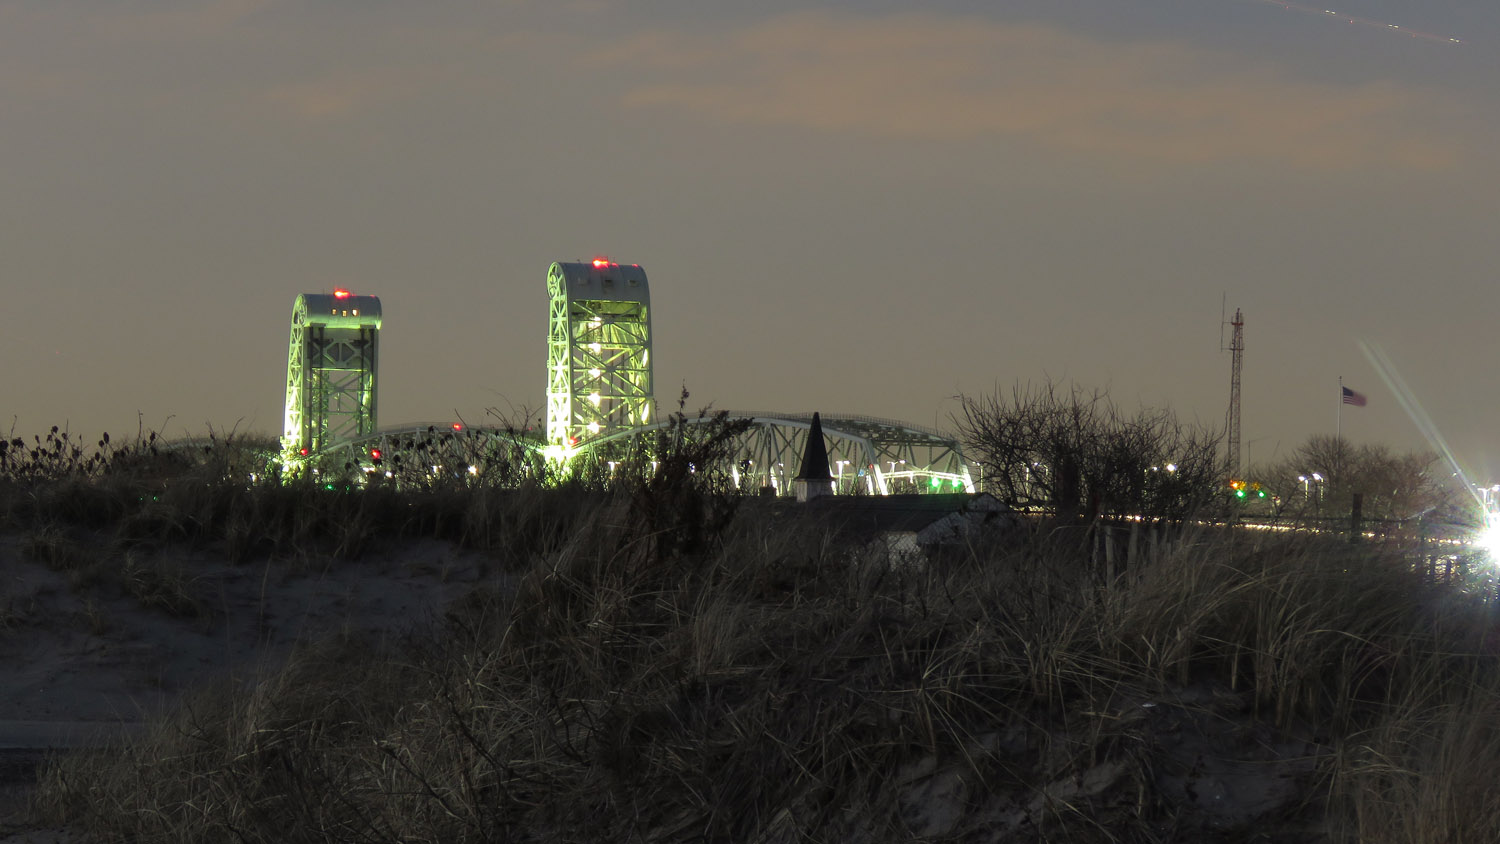 Gil Hodges Bridge after sunset, taken from the beach at Fort Tilden, Queens, February 5, 2019. Time exposure, 15 seconds